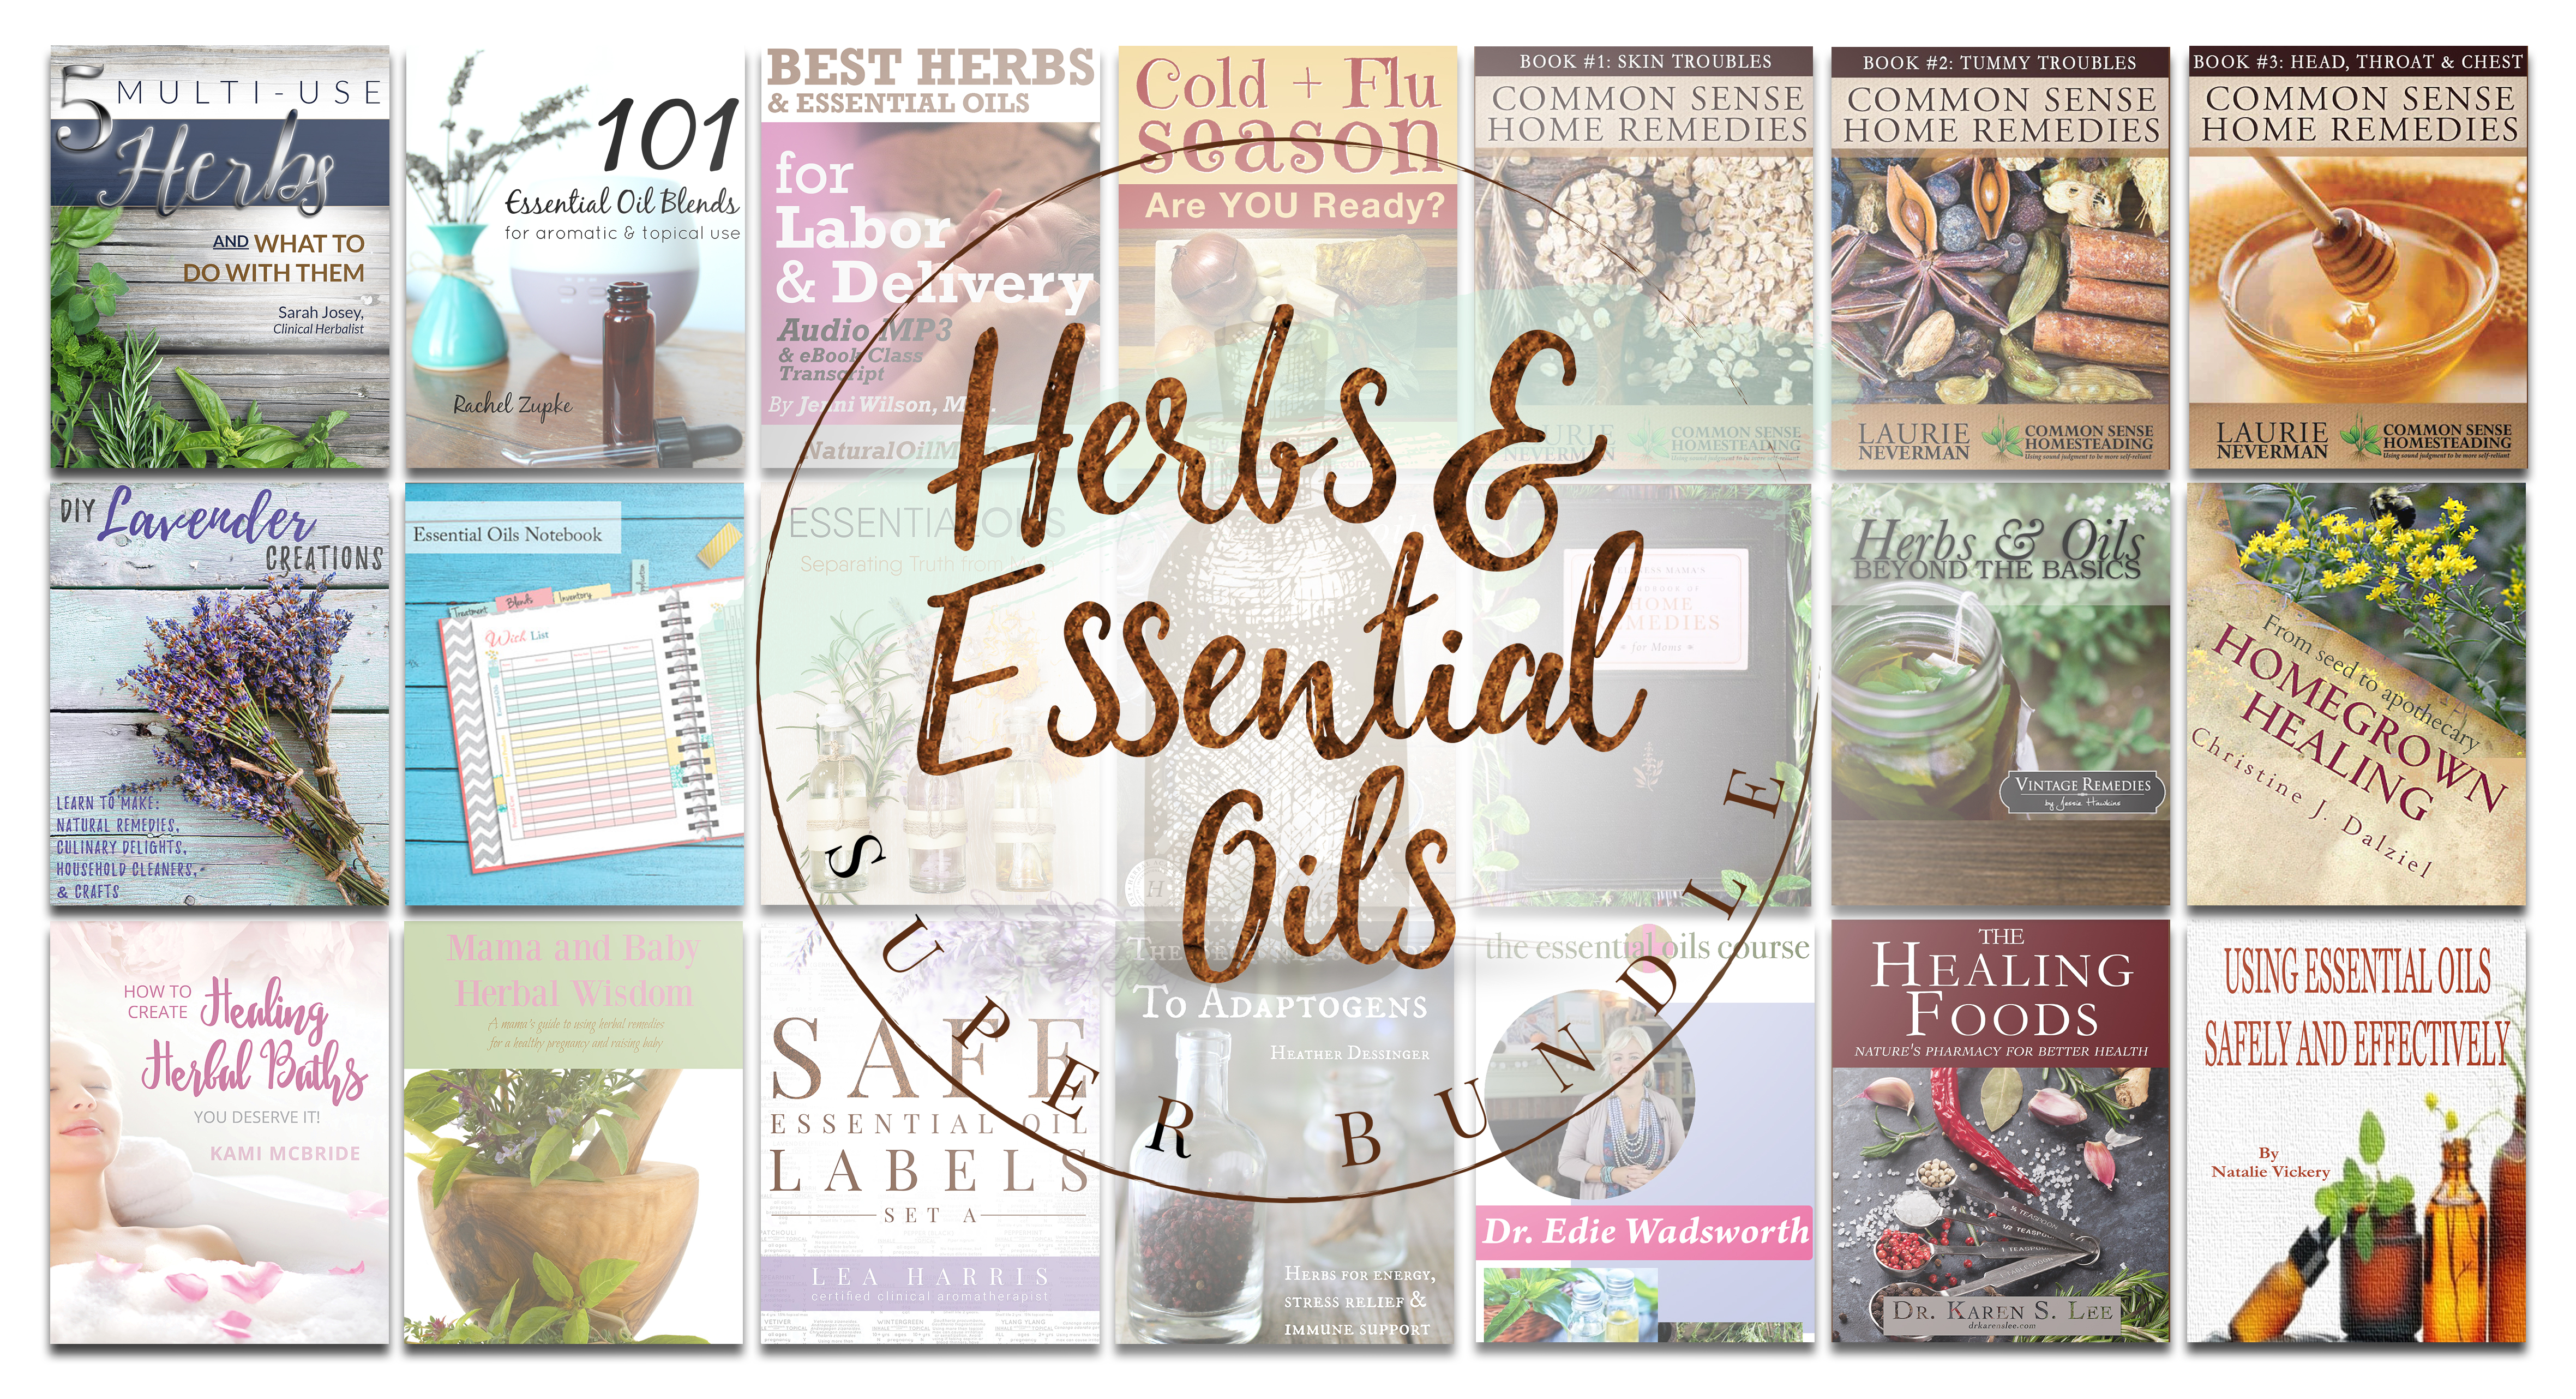 When It Comes To Essential Oils and Home Remedies, I'm A Beginner